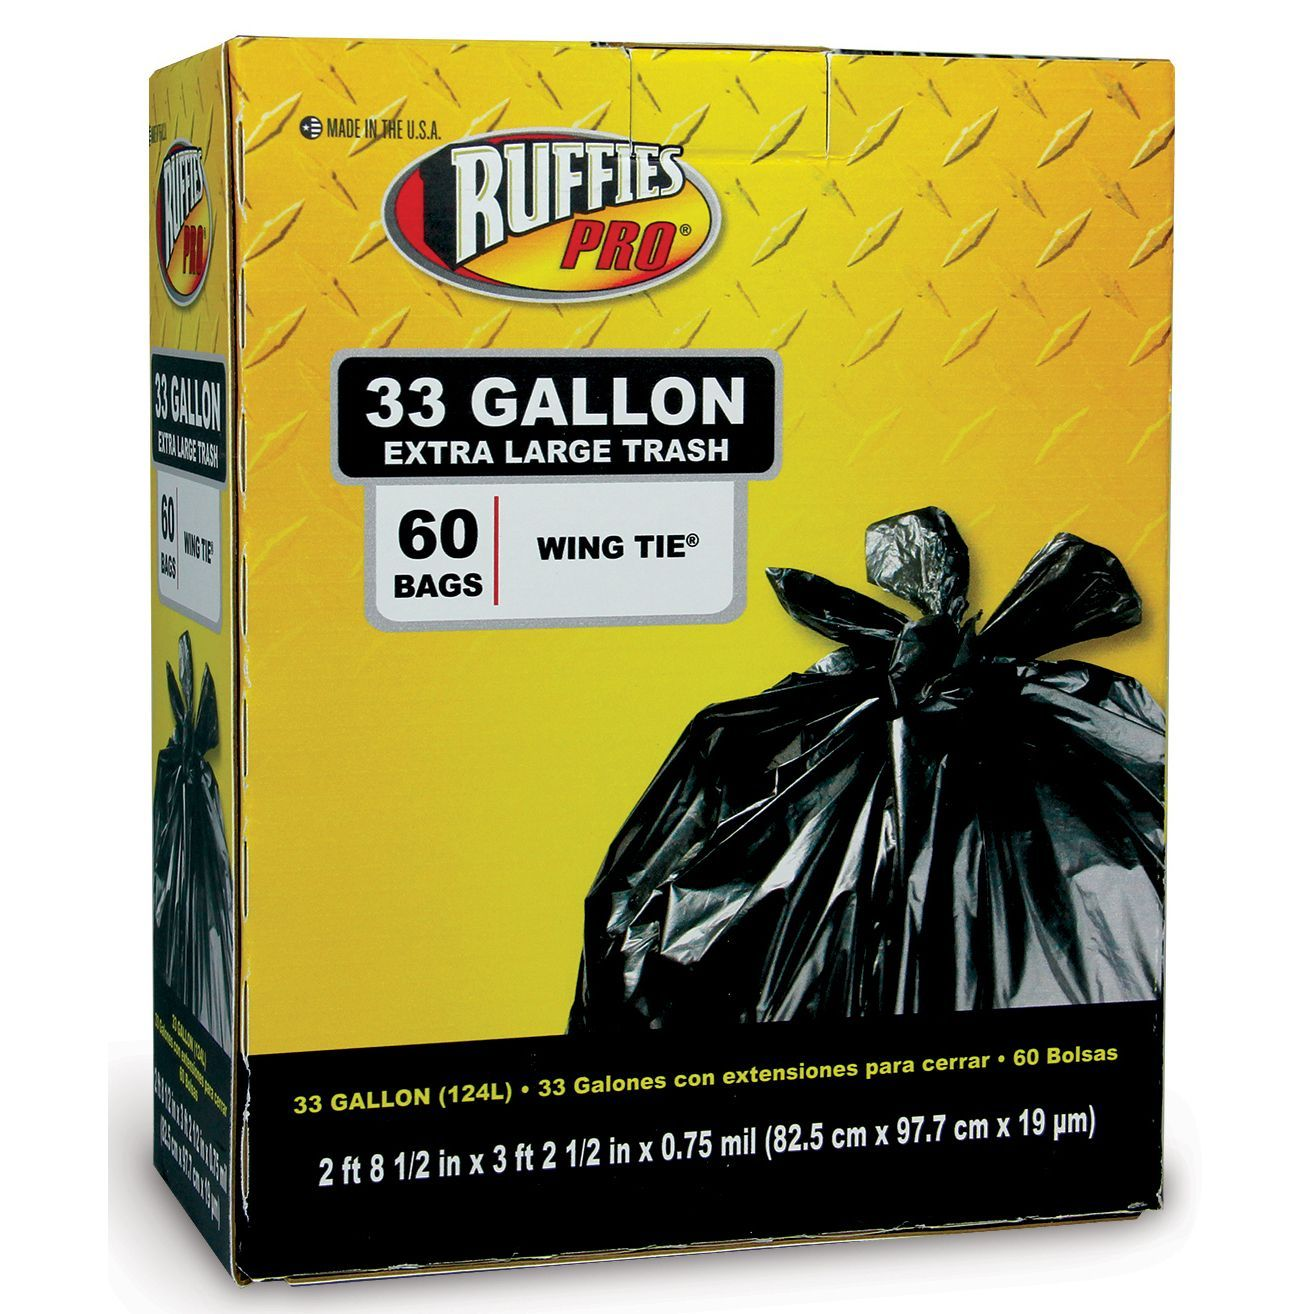 Ruffies Pro 1124904 33 Gallon Extra Trash Bags 60 Count